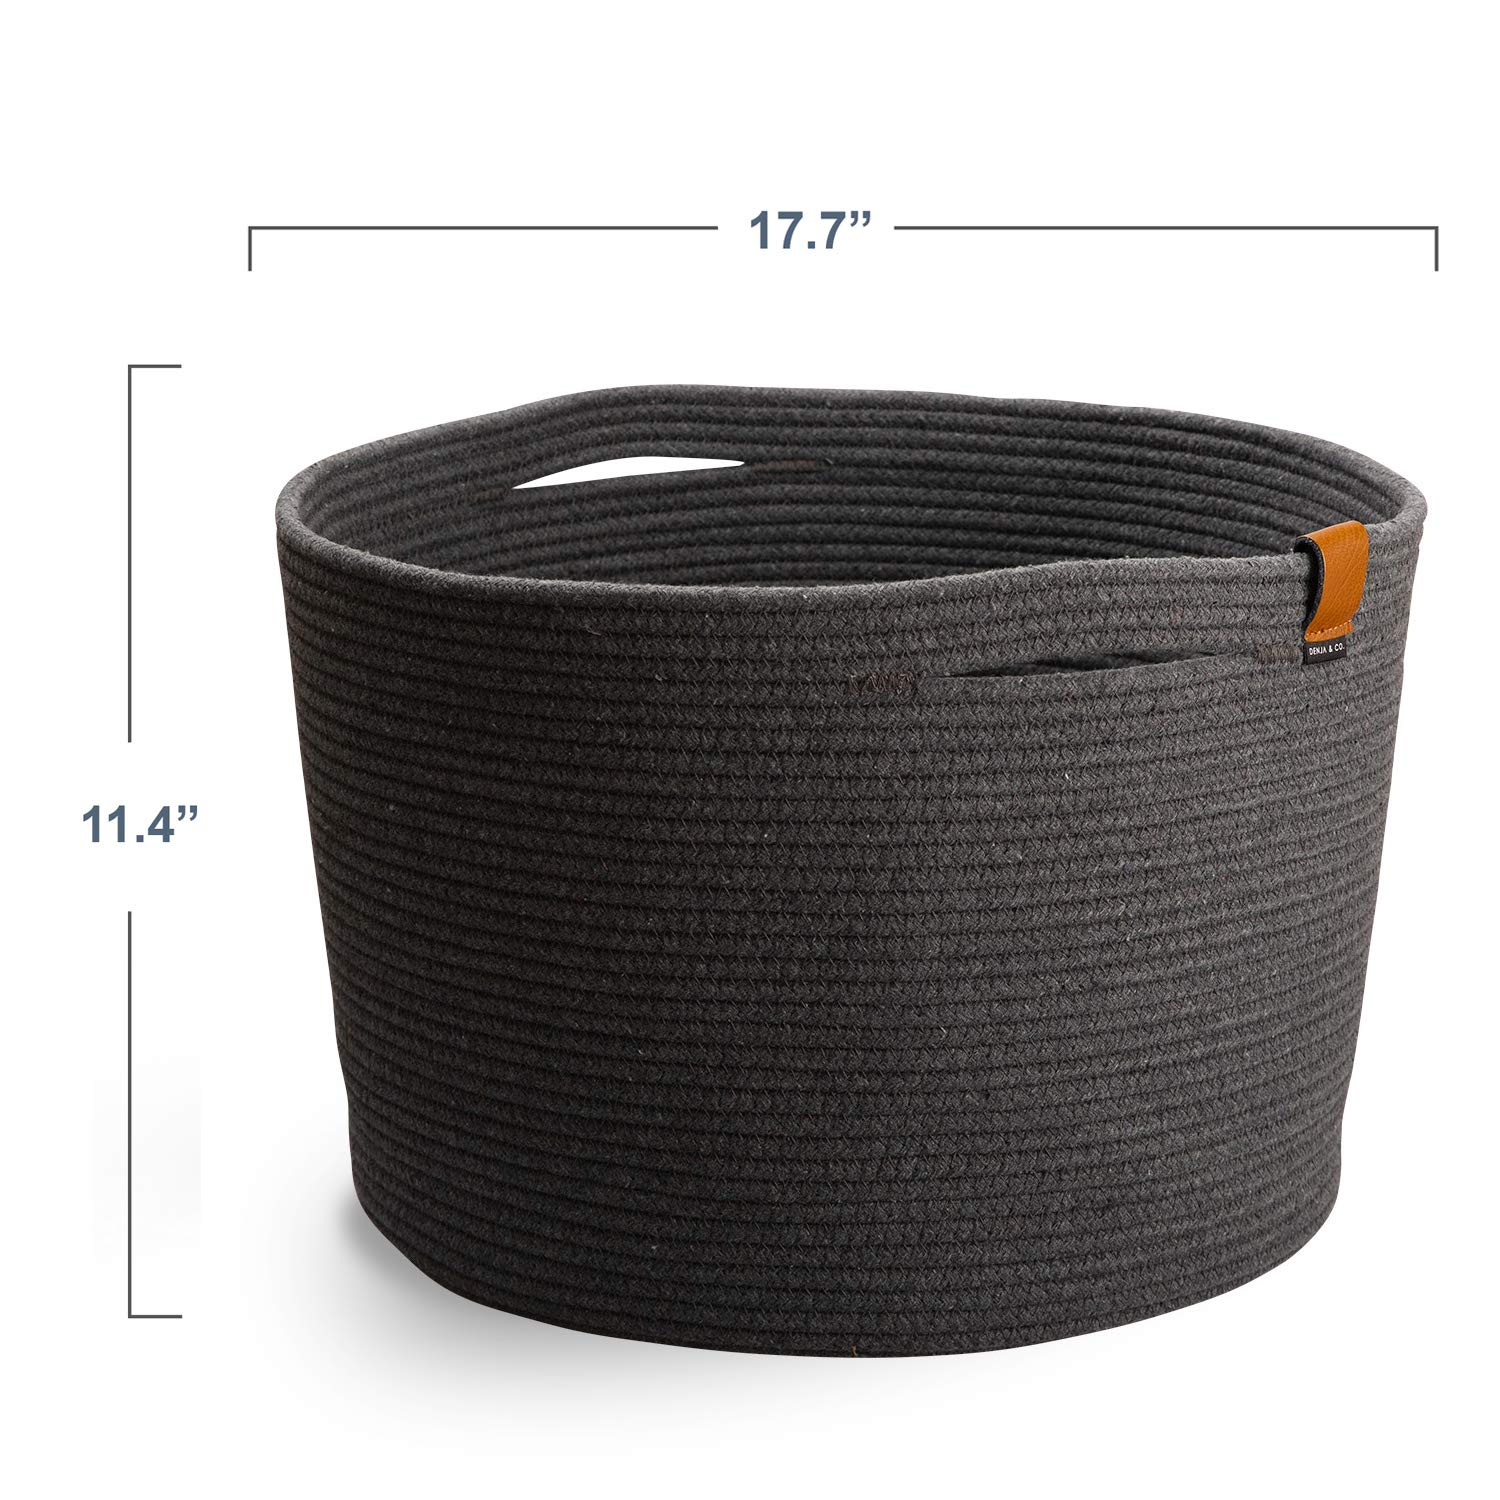 Decorative Floor Basket for Shoes Toys Laundry or Blankets DENJA /& CO Large Cotton Rope Basket 17.7 Wide x 11.4 Tall Charcoal Gray | Woven Shoe Basket